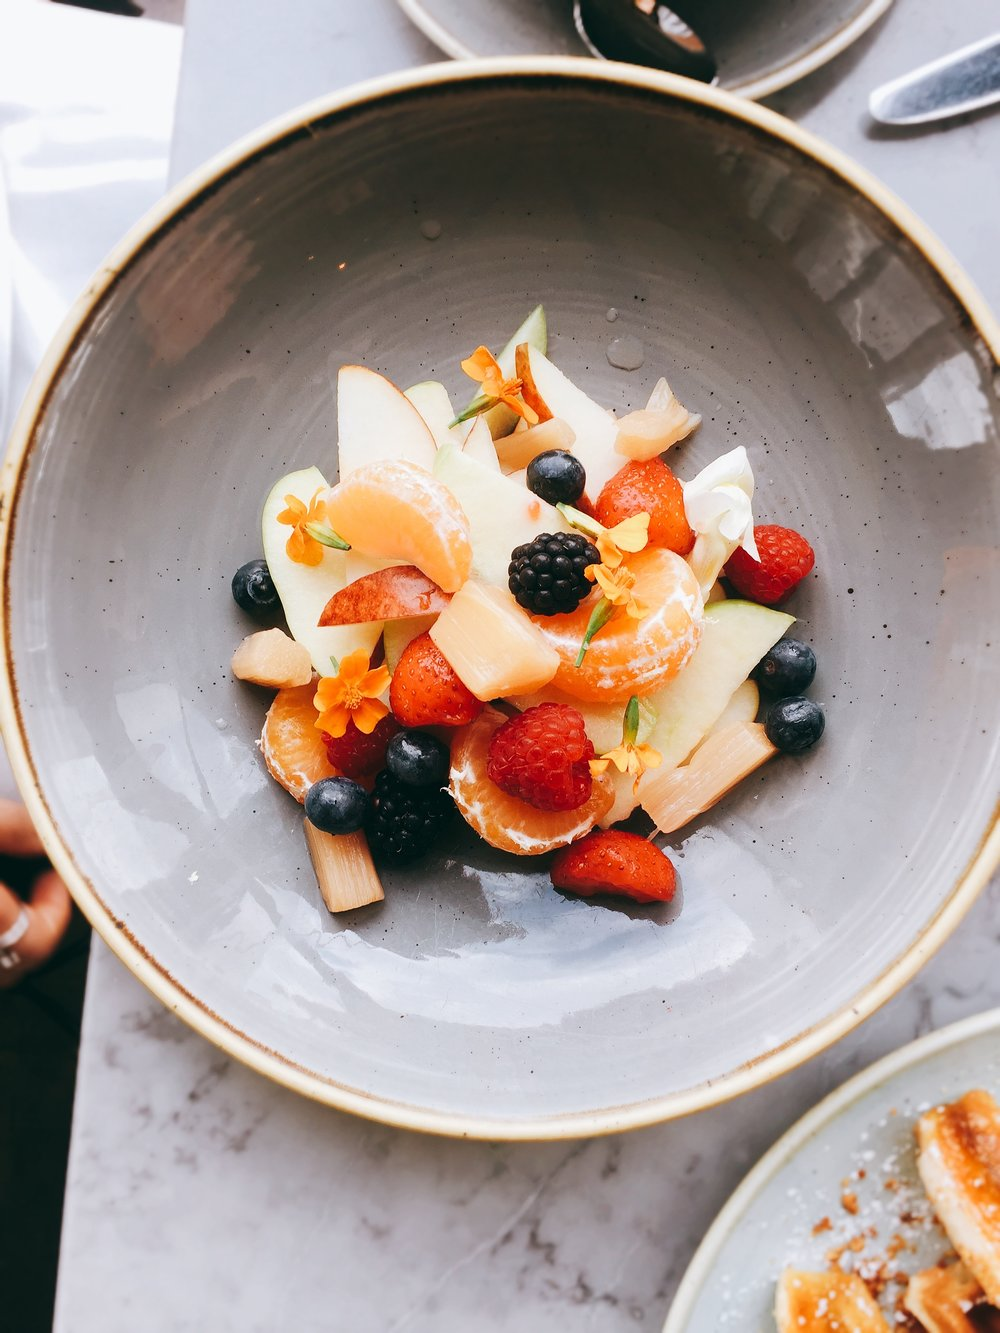 Fruit salad - Duck and Waffle restaurant review